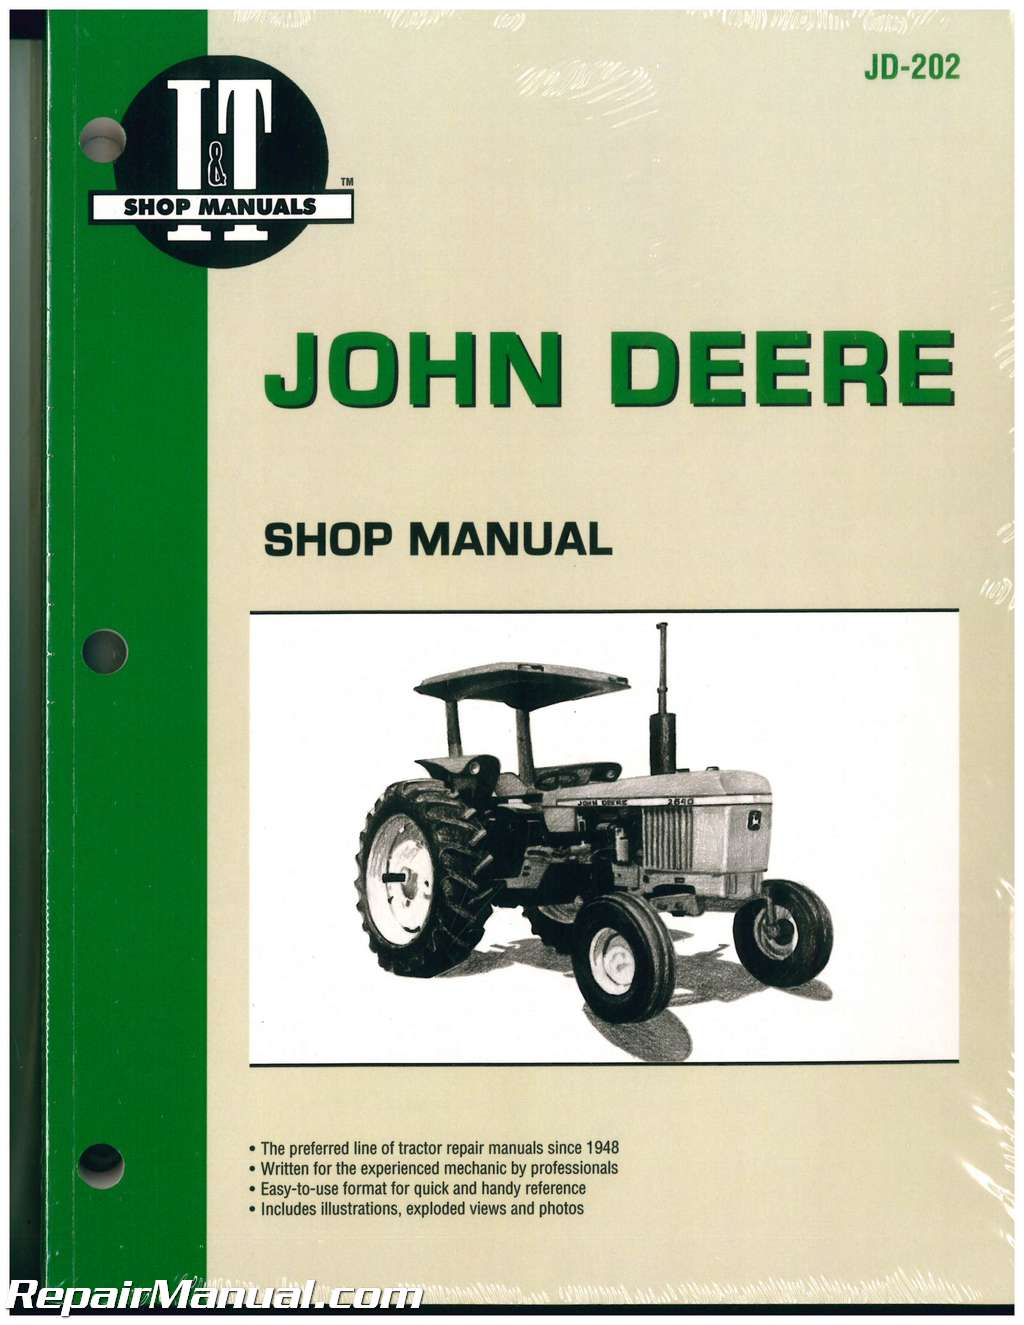 John Deere Tractor Manual 2040 2510 2520 2240 2440 2630 2640 4040 Bosch  Alternator Wiring Diagram 2240 John Deere Alternator Wiring Diagram